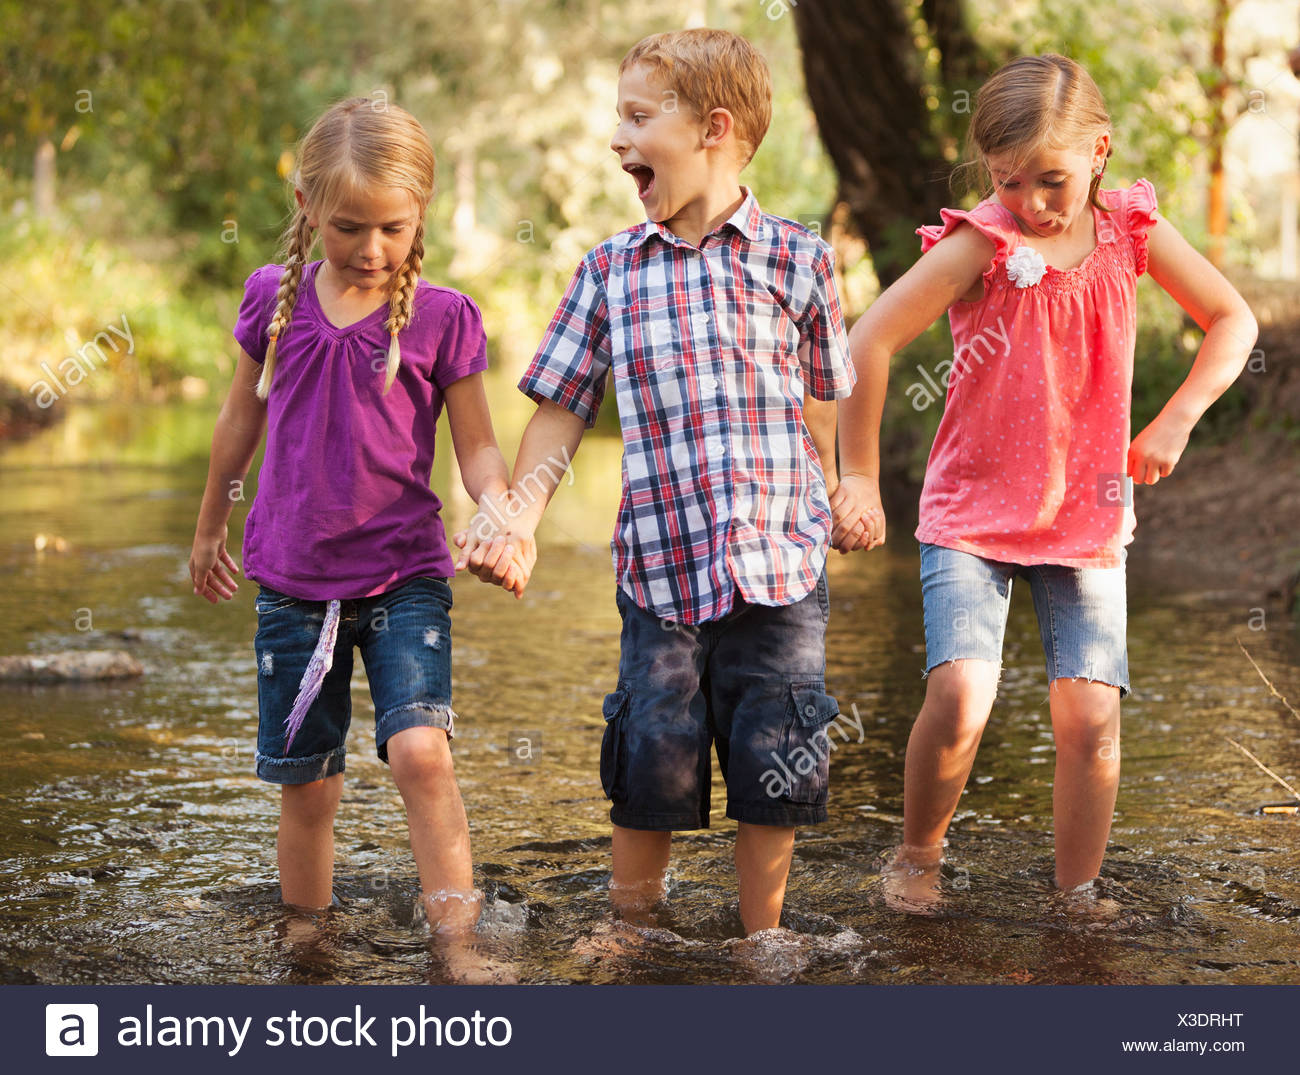 USA, Utah, Lehi, Three kids( 4-5, 6-7) holding hands and walking together in small stream - Stock Image